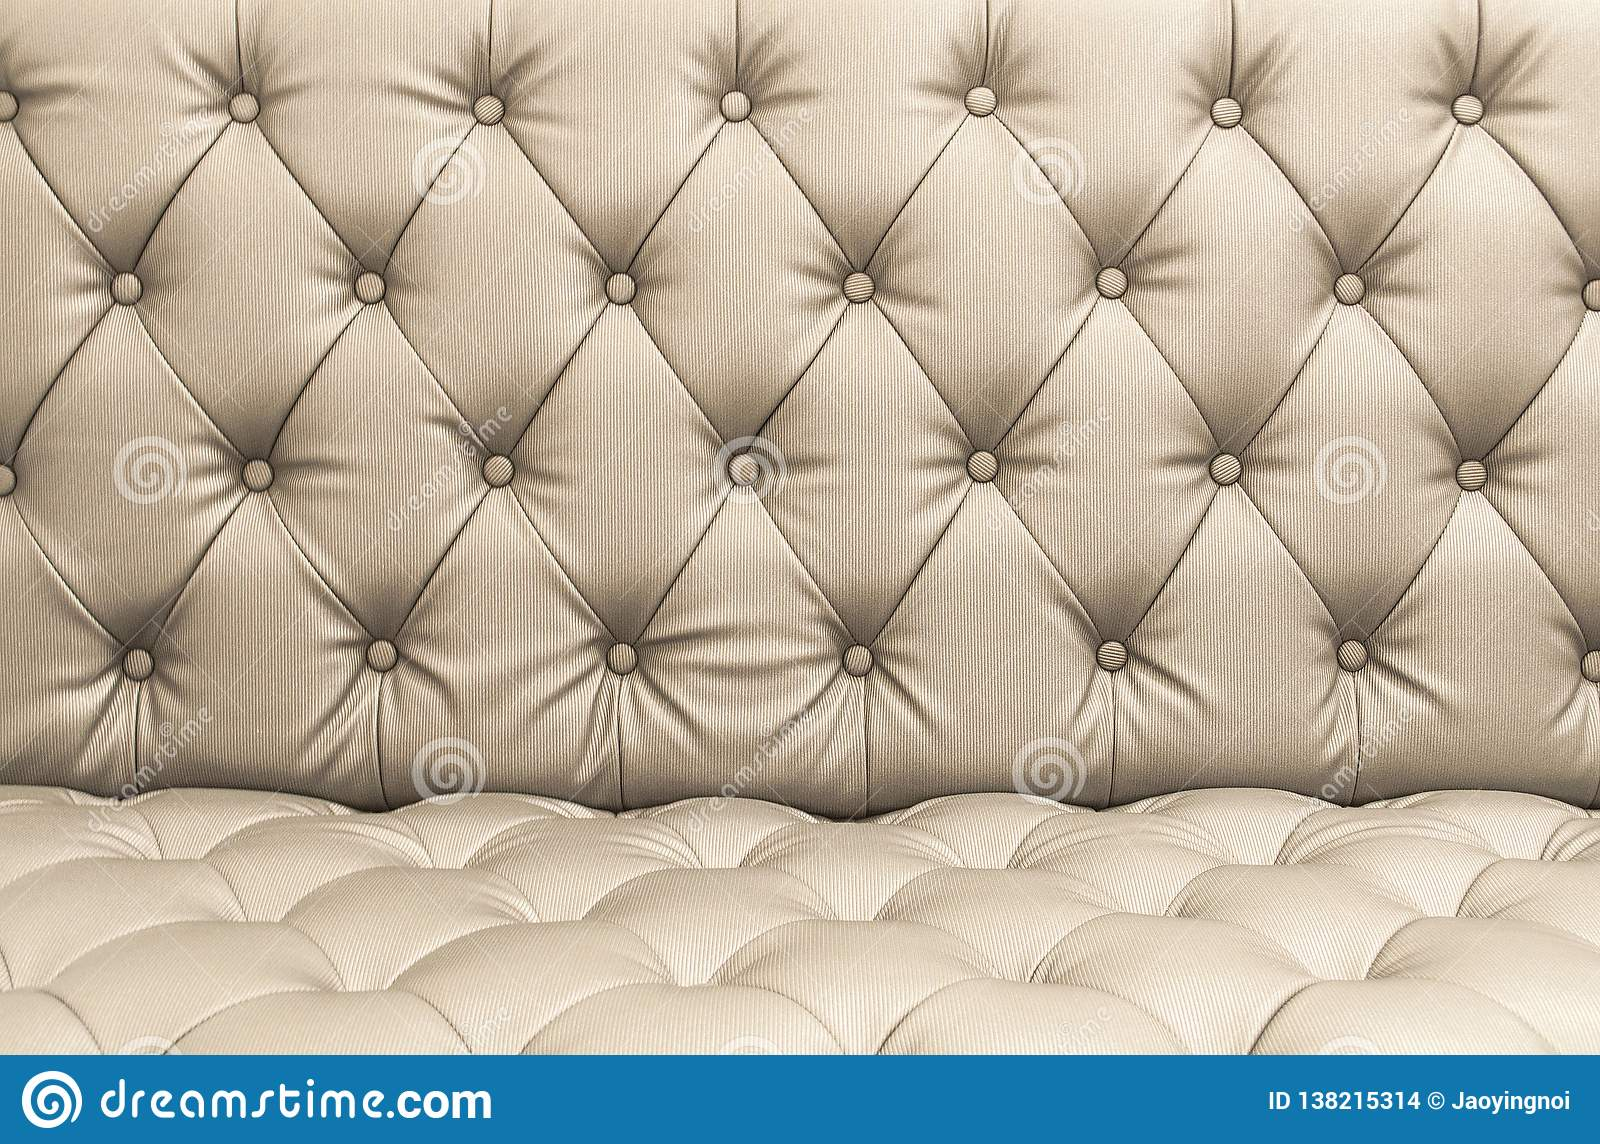 4 507 Beige Color Leather Texture Photos Free Royalty Free Stock Photos From Dreamstime